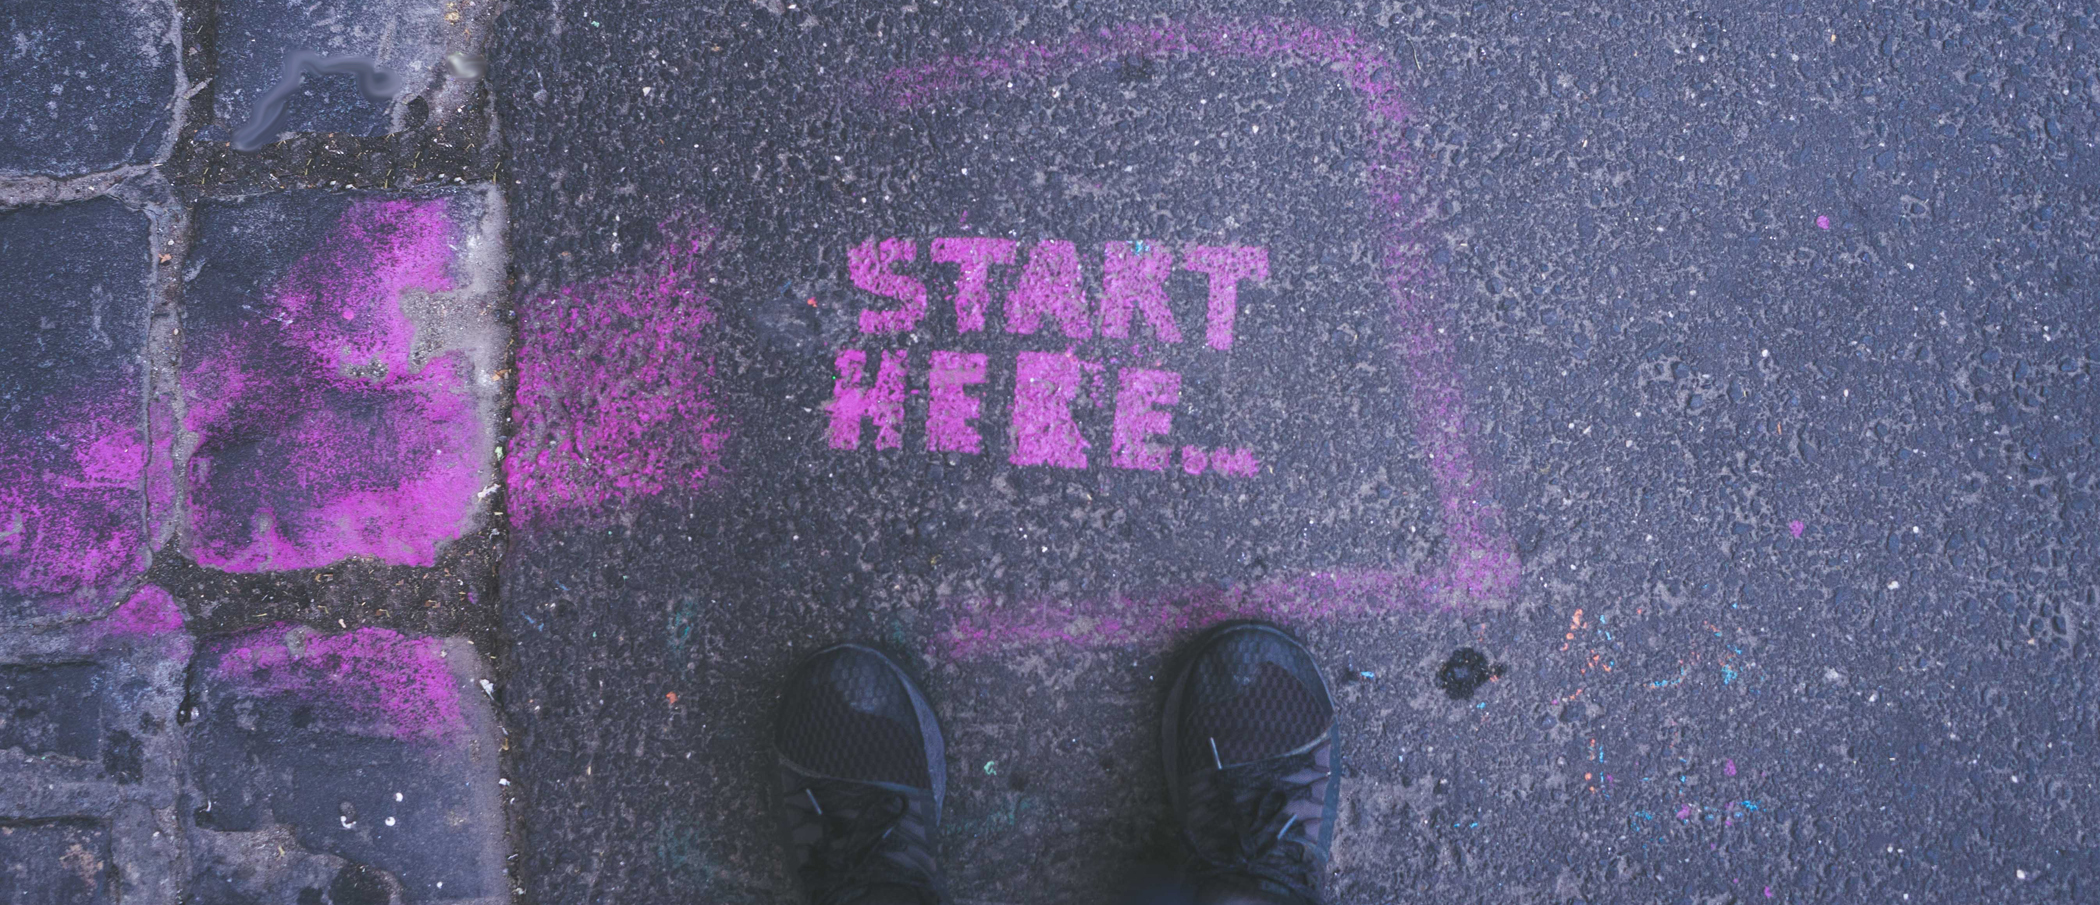 Image by Gia Oris. Feet standing in front of the spray painted pink words ' start here' on the road.